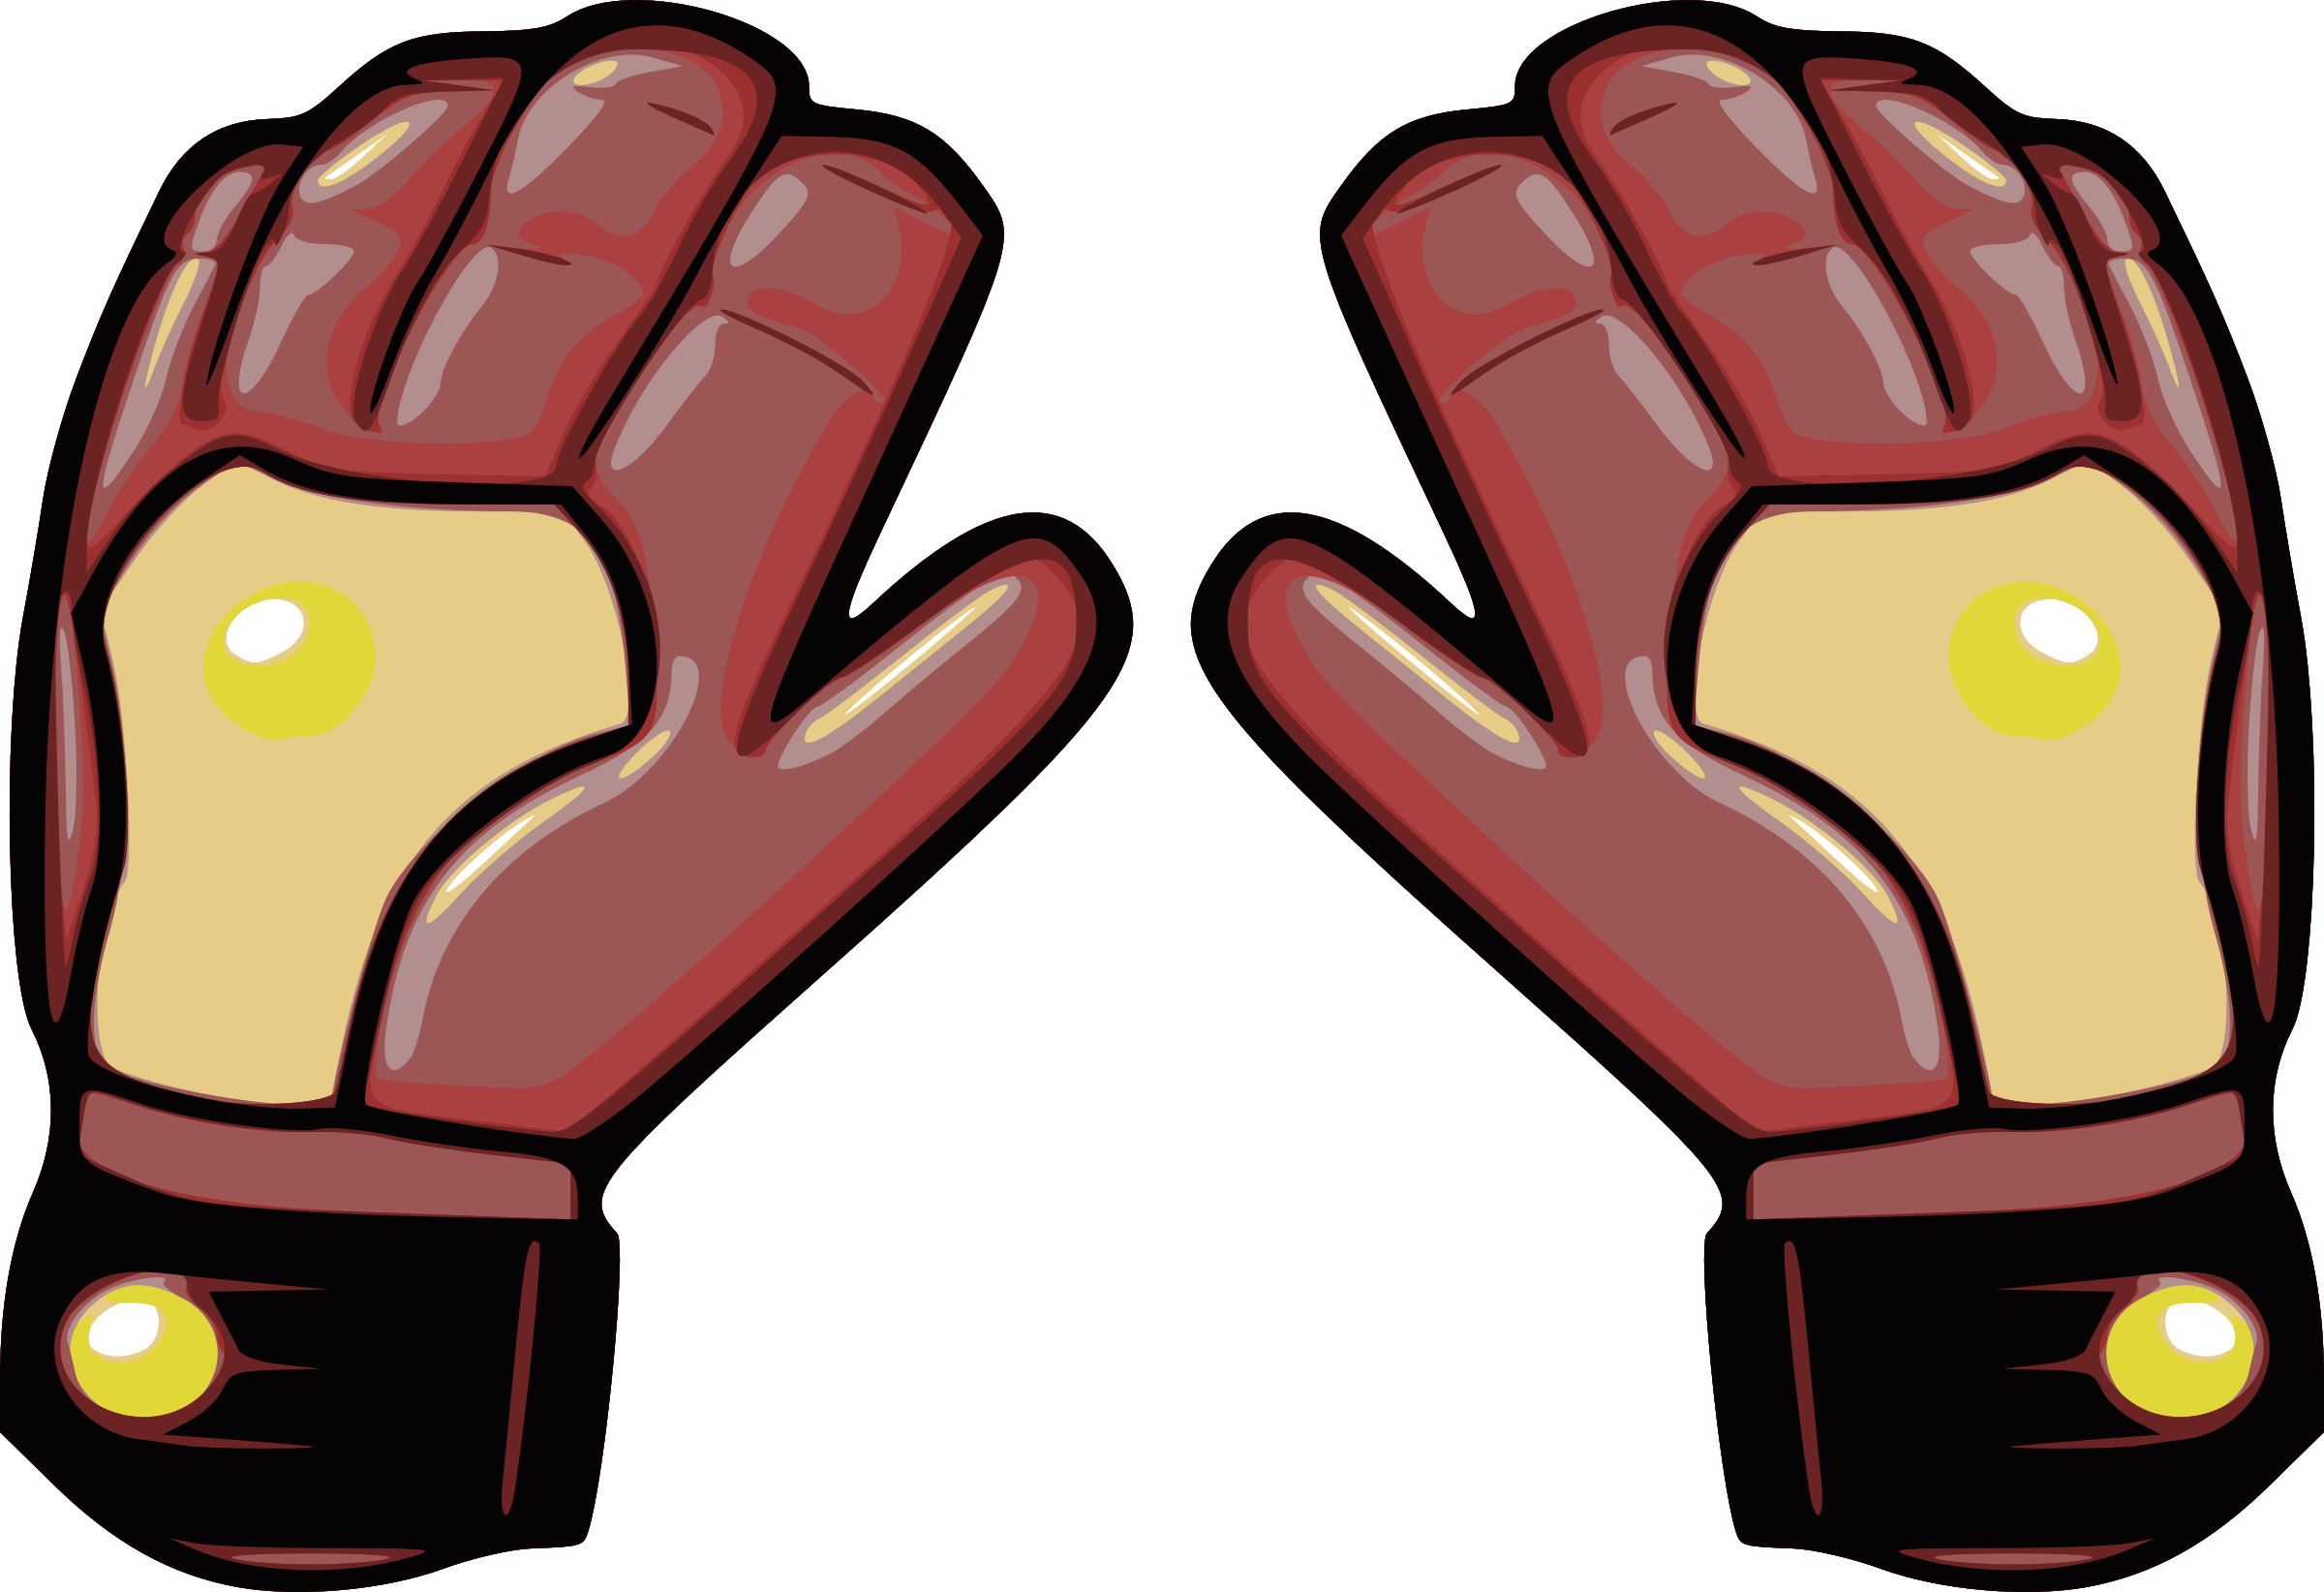 Food clipart glove. Gloves icons png free